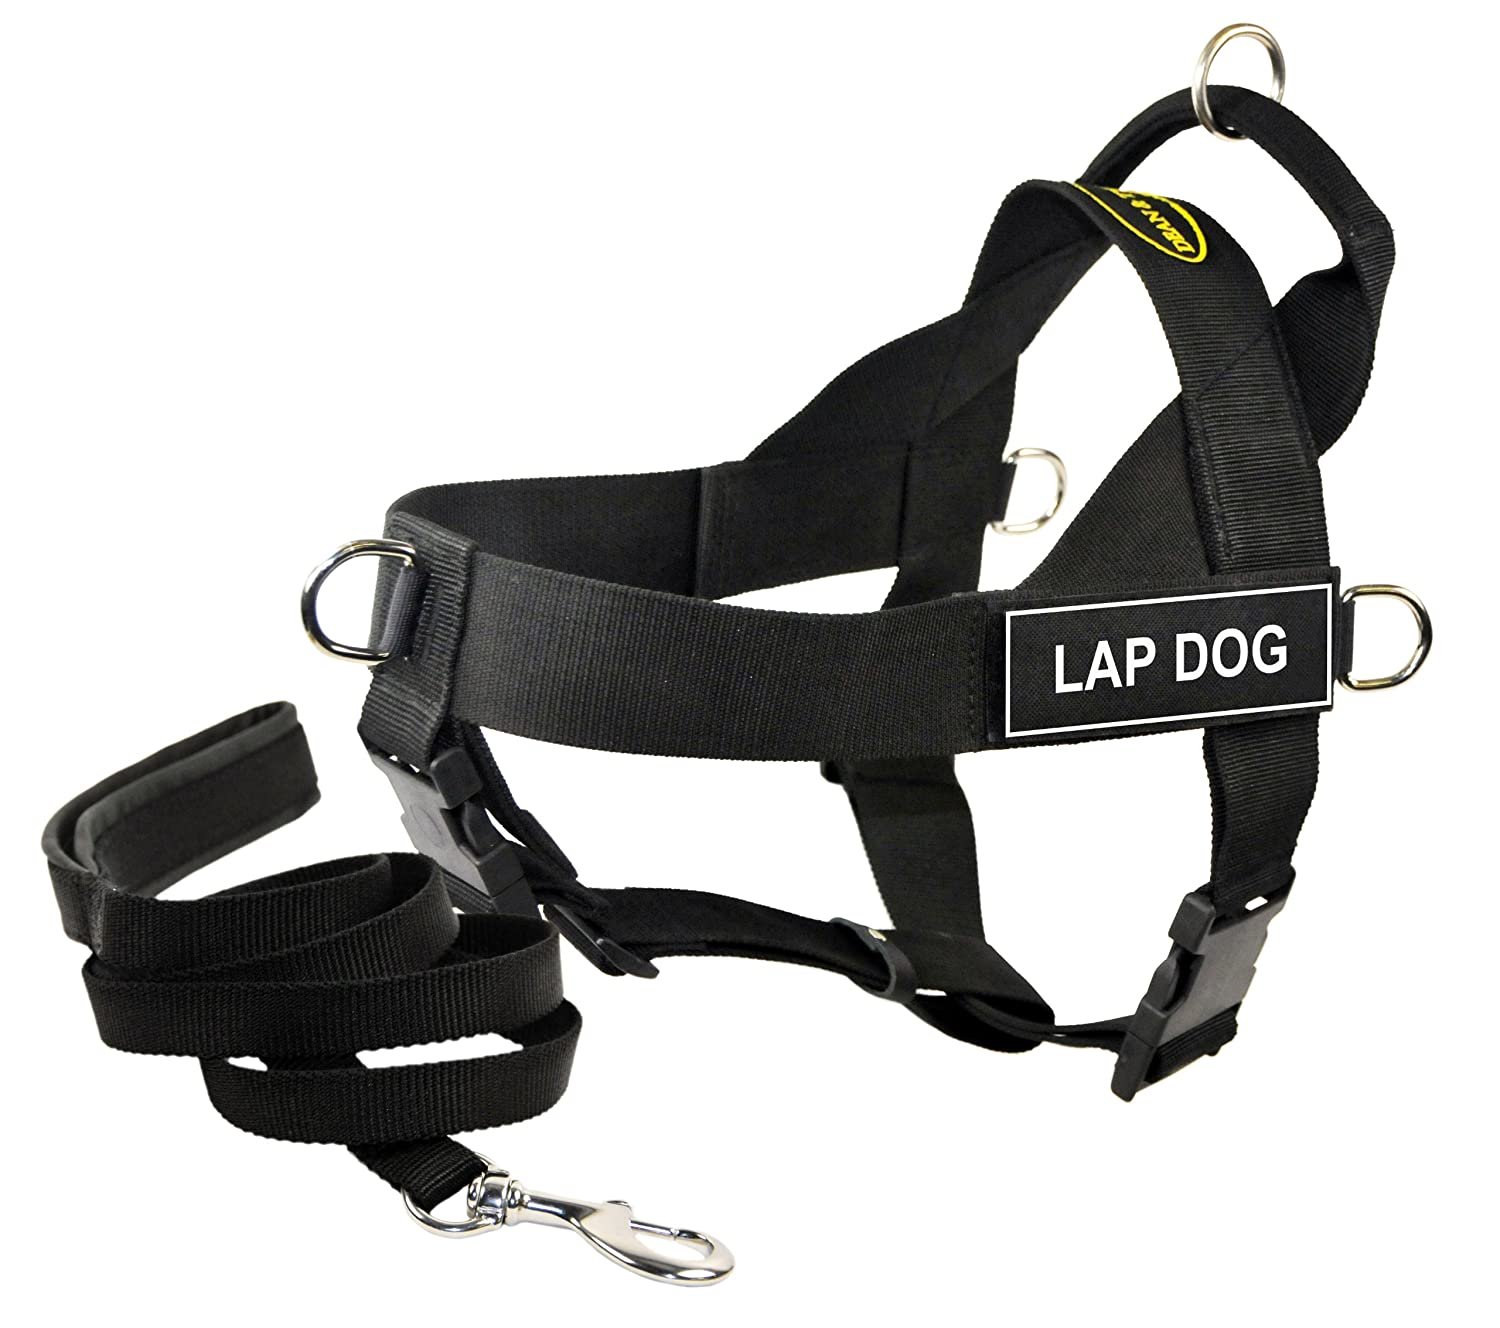 Dean & Tyler's DT Universal LAP DOG Harness, X-Small, with 6 ft Padded Puppy Leash.